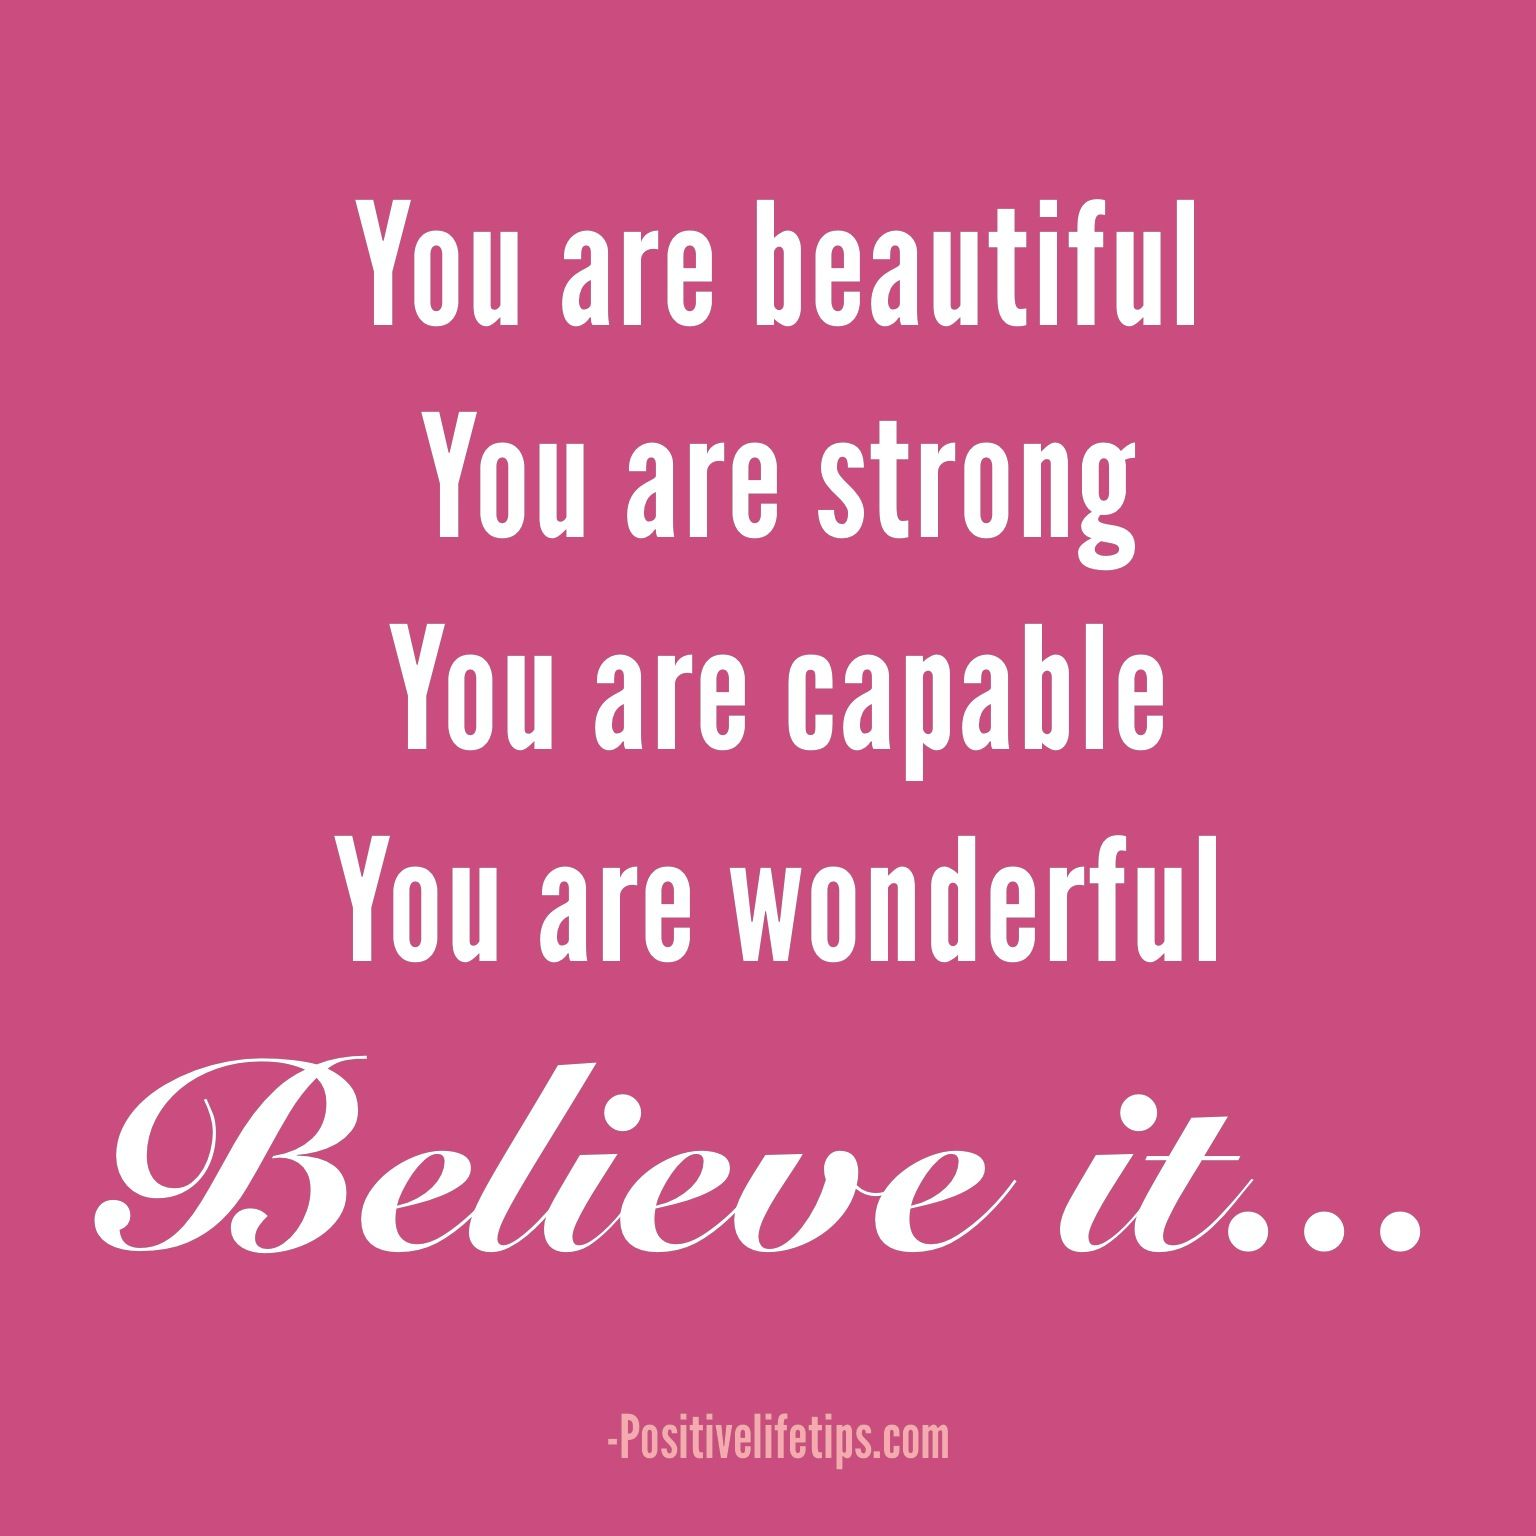 You Are Beautiful You Are Strong You Are Capable You Are Wonderful Believe It Strong Girl Quotes Affirmations For Kids You Are Wonderful